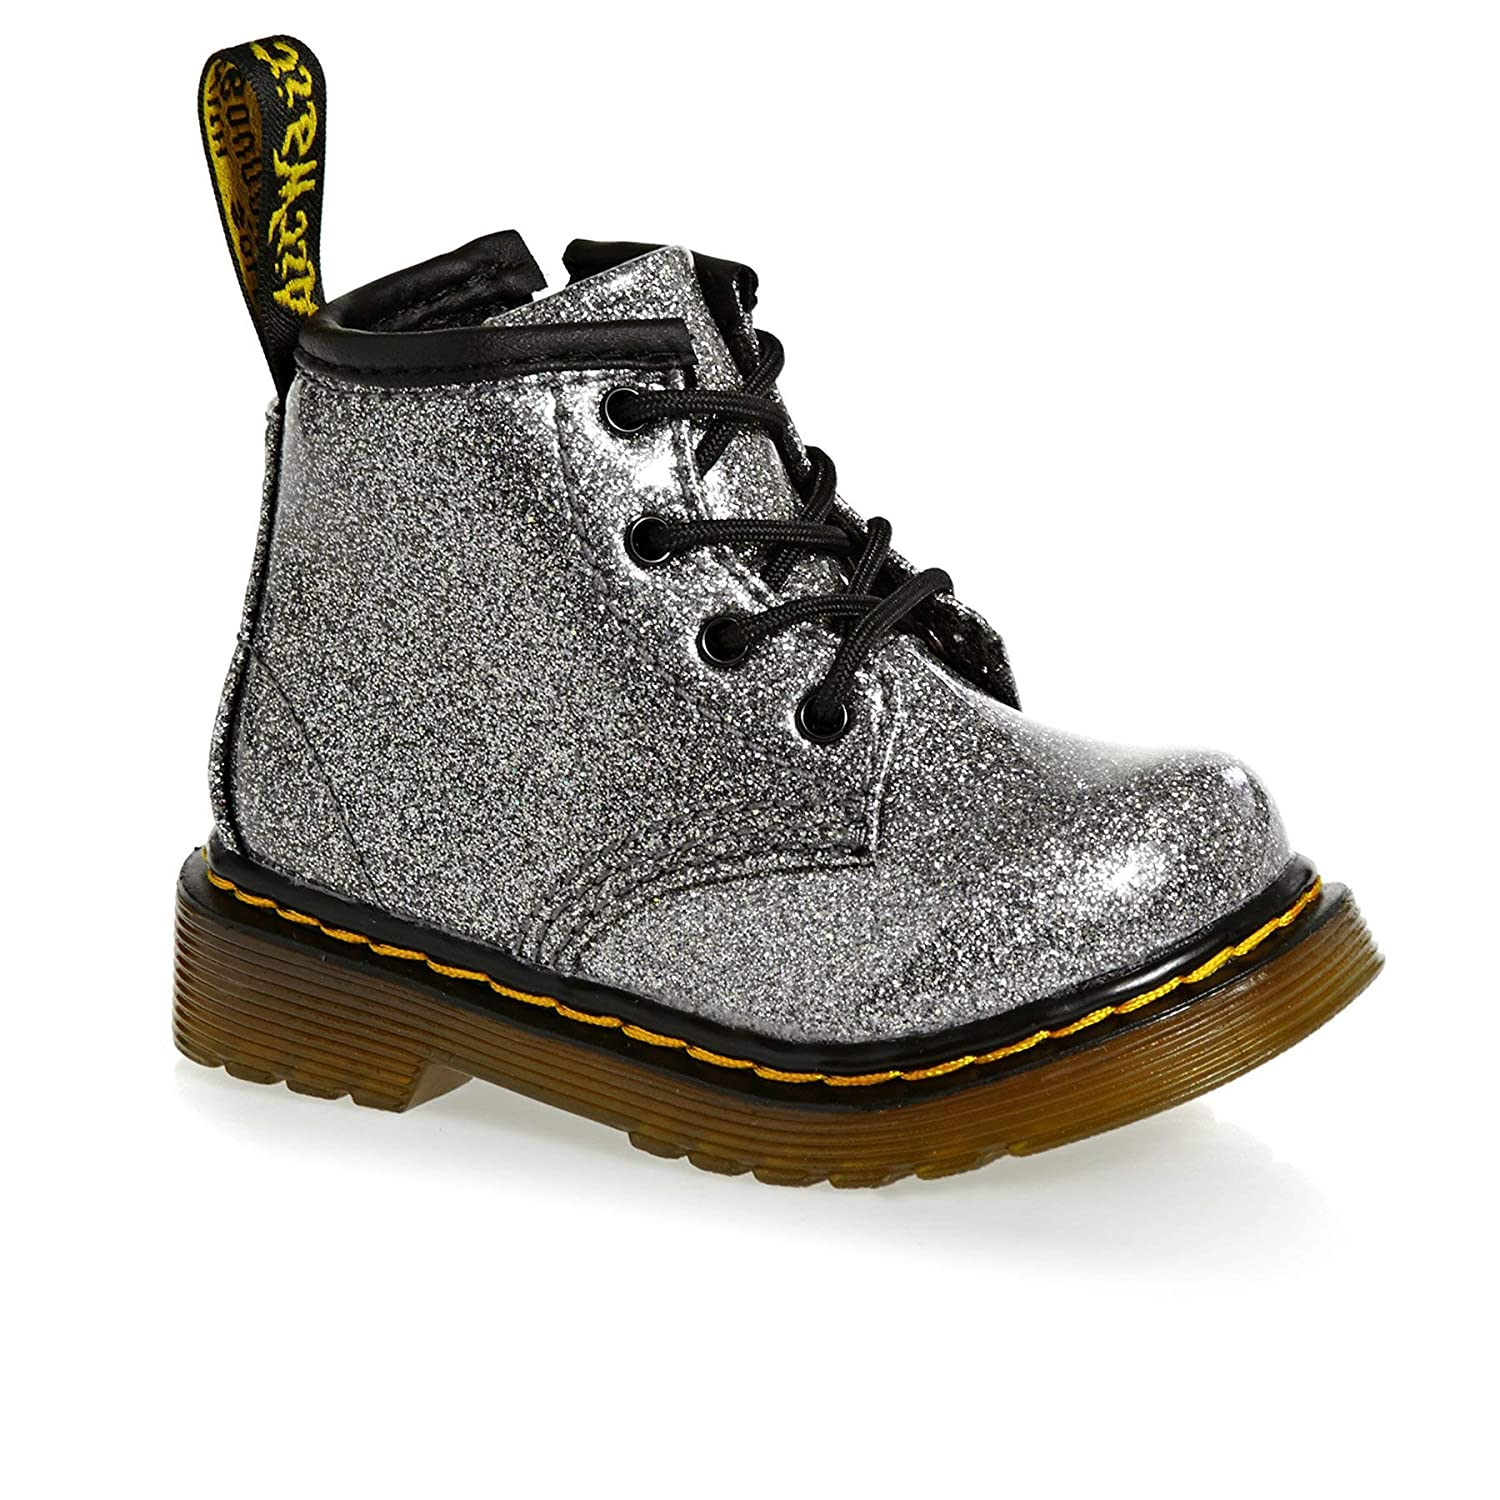 Conciso Animali documentario  Buy Dr. Martens Girls'' 1460 I Ankle Boots Blue Coated Glitter 029, 4 Child  UK 20 EU at Amazon.in